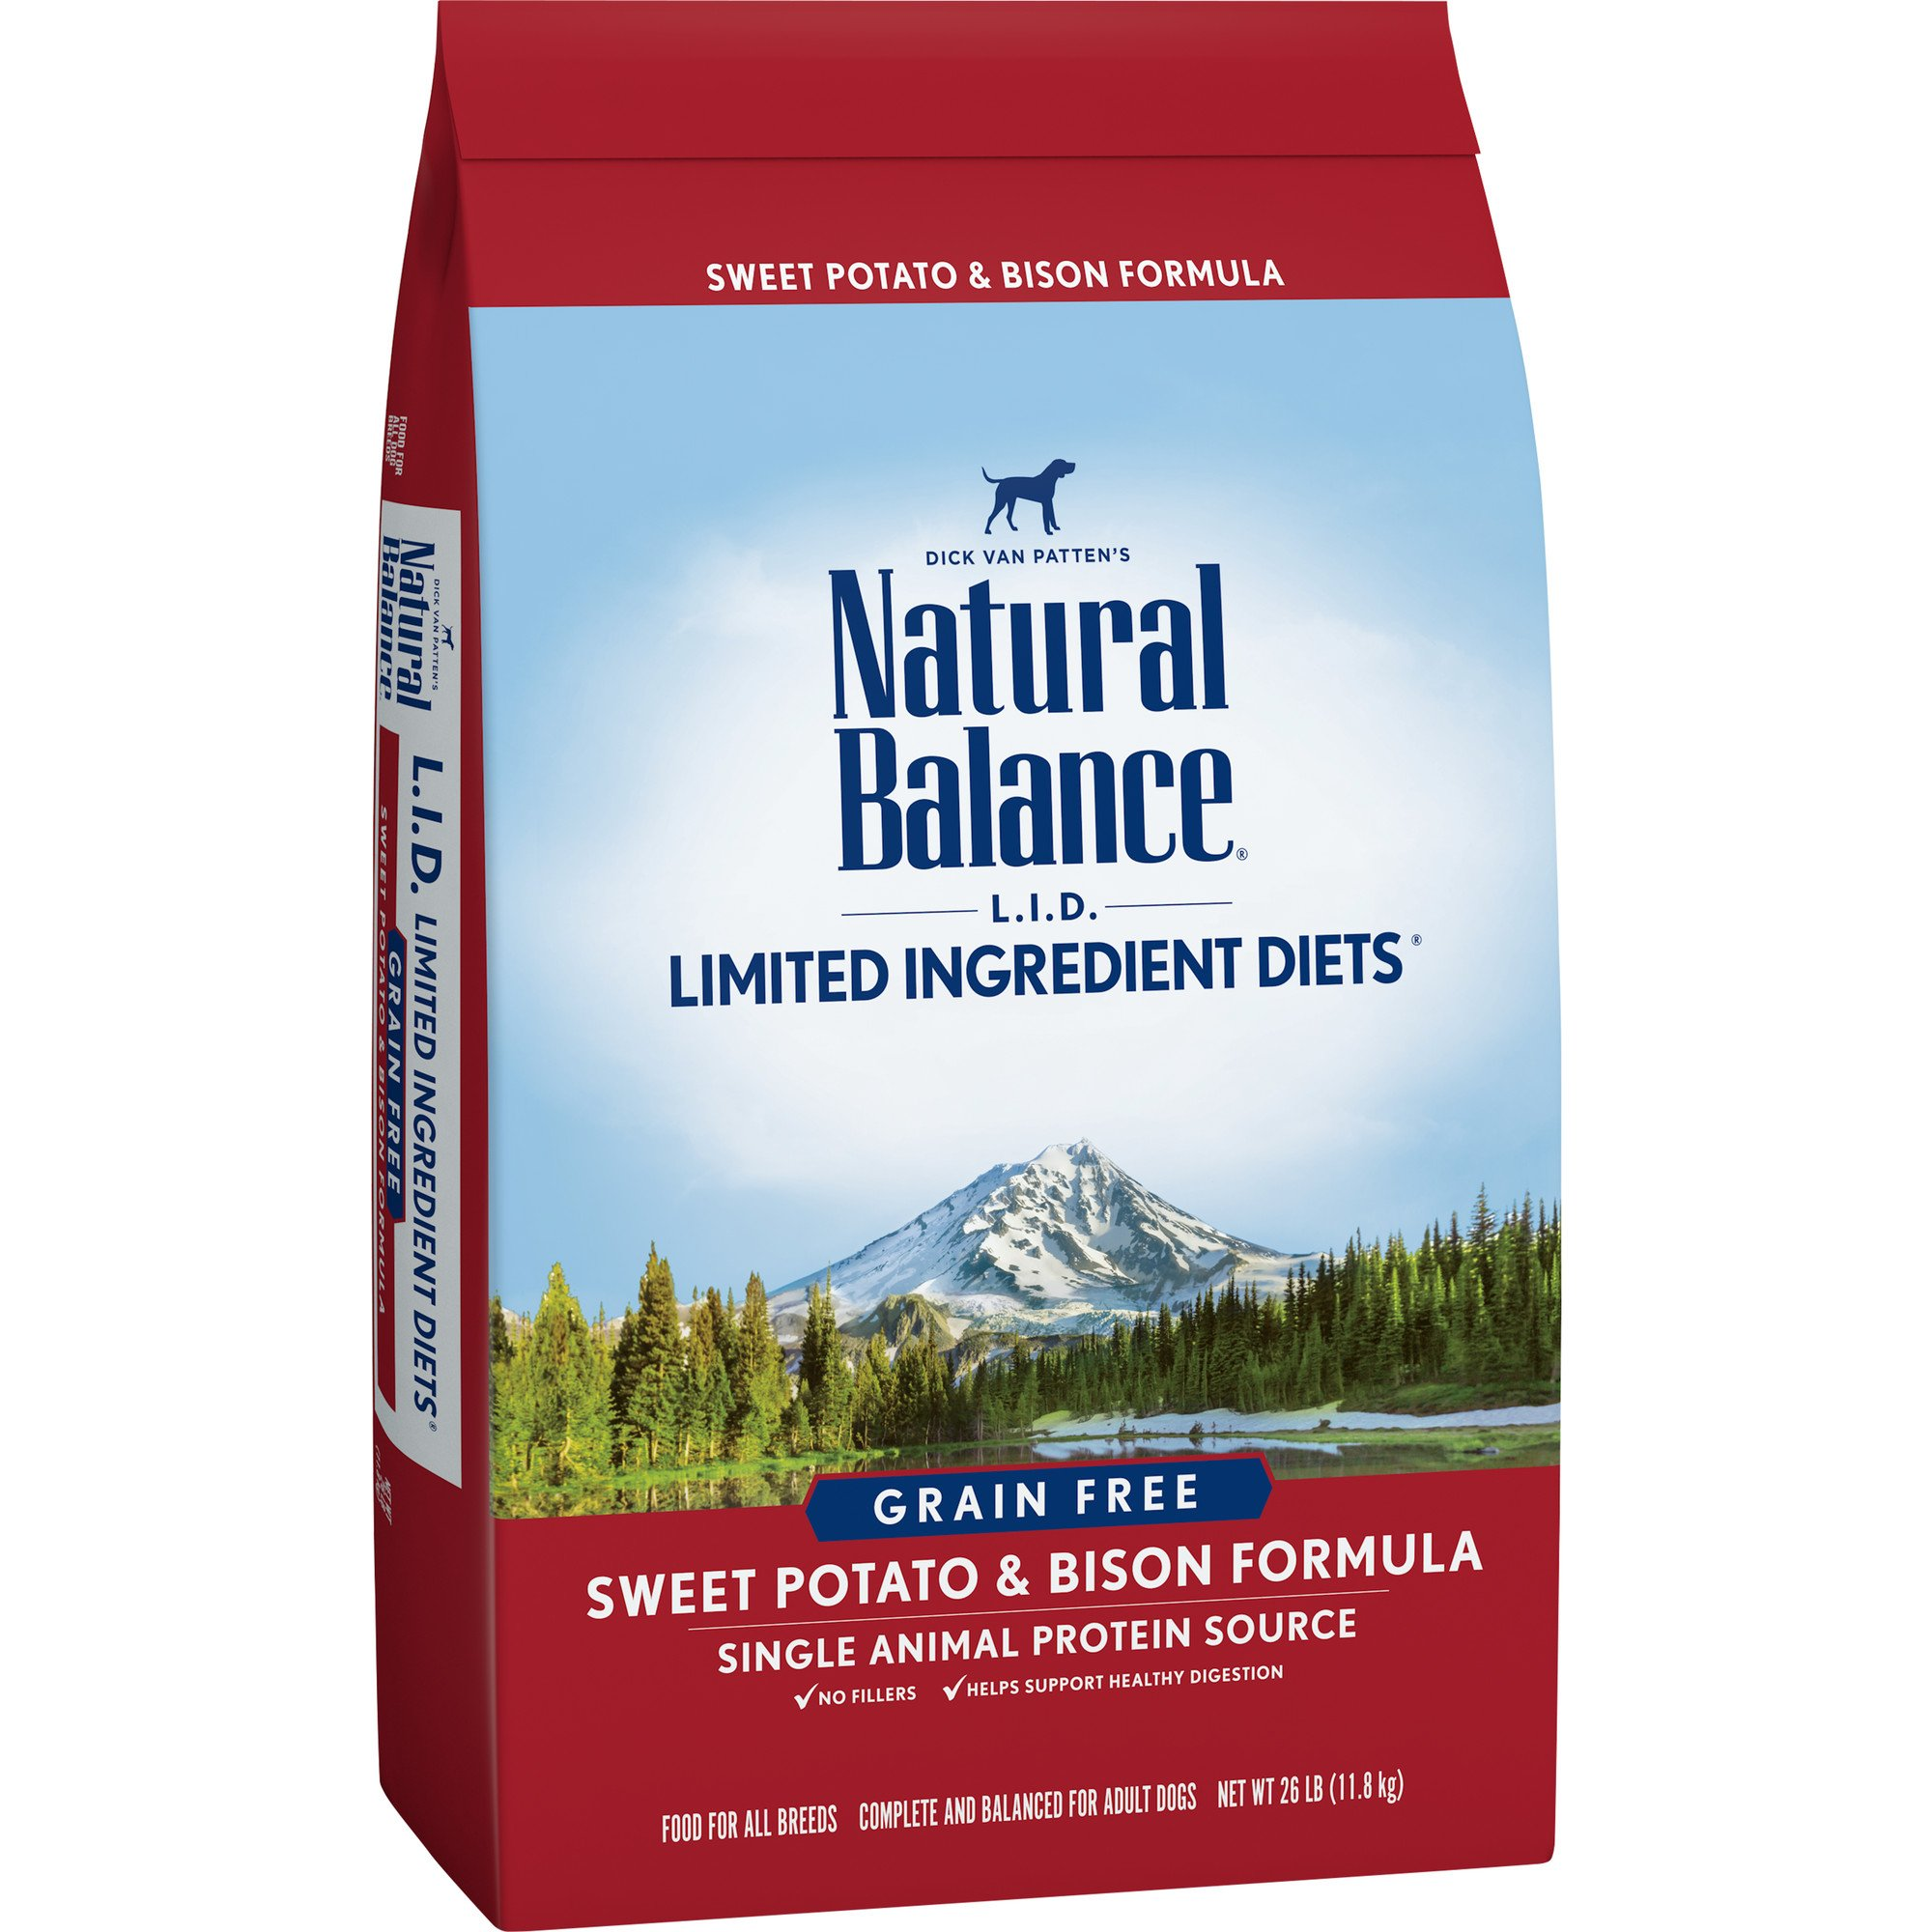 Natural Balance Limited Ingredient Diets Dry Dog Food - Sweet Potato & Bison Formula